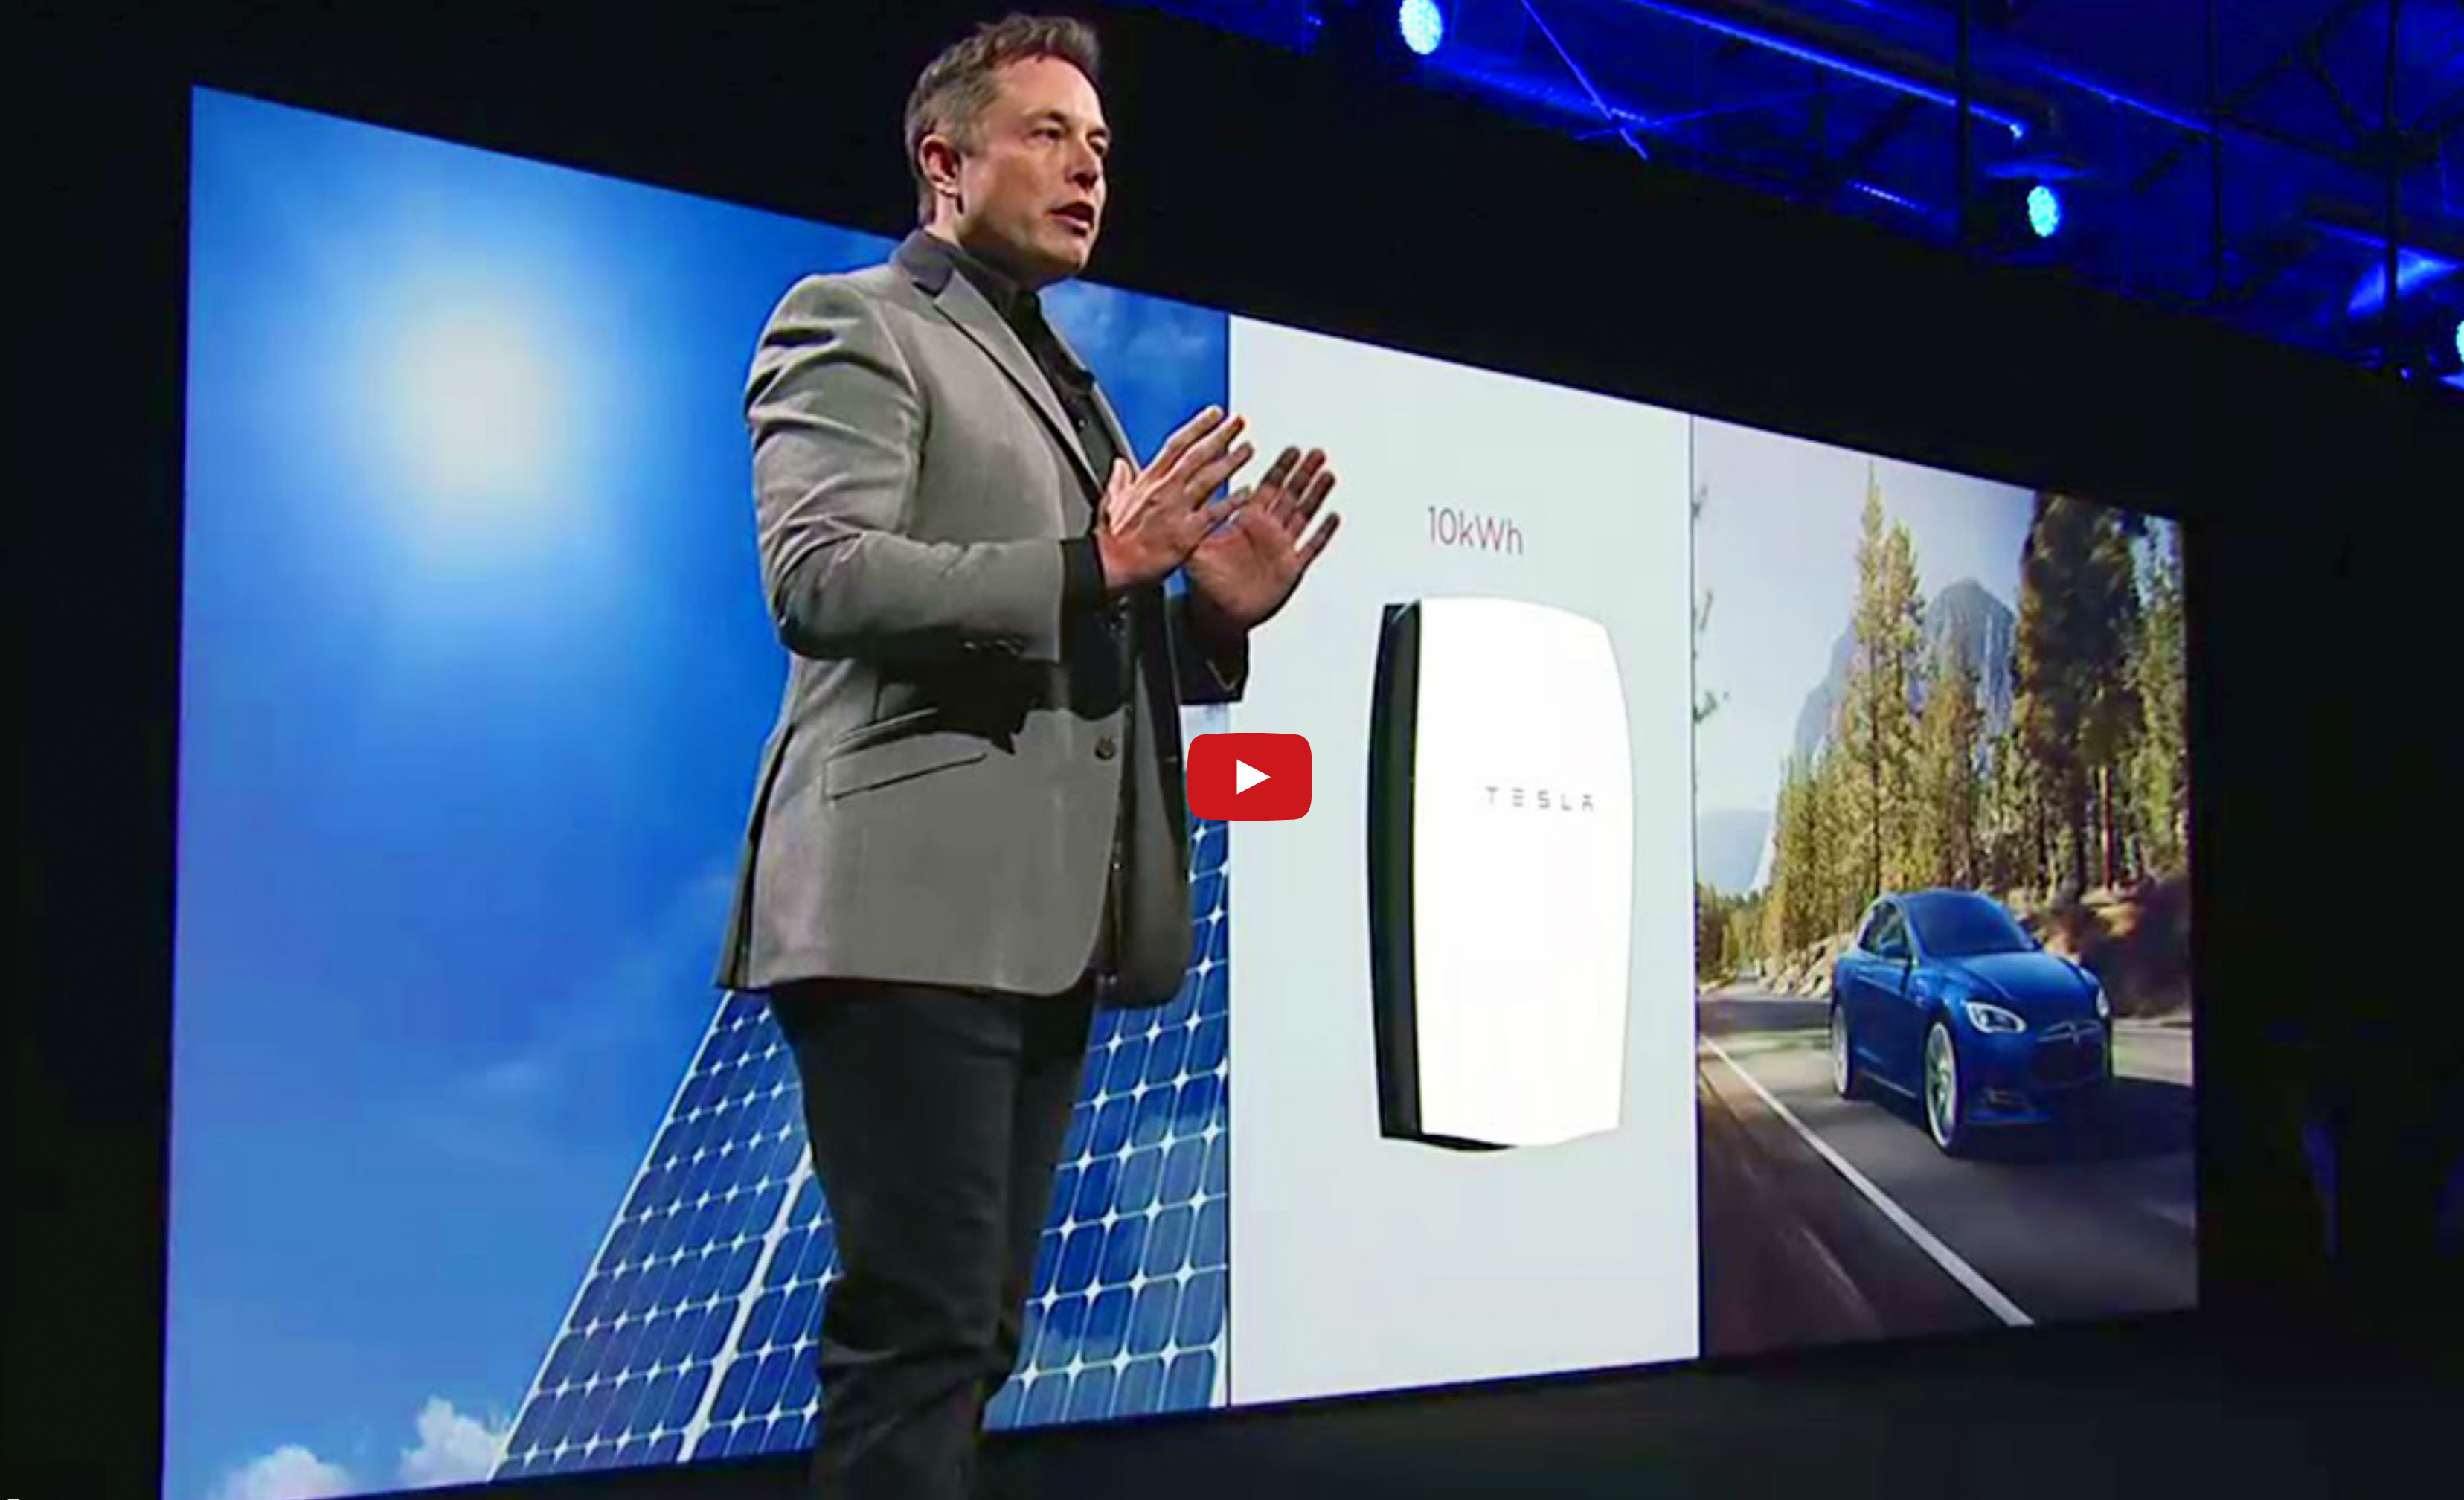 Tesla's new $3500 10kWh Powerwall home battery lets you